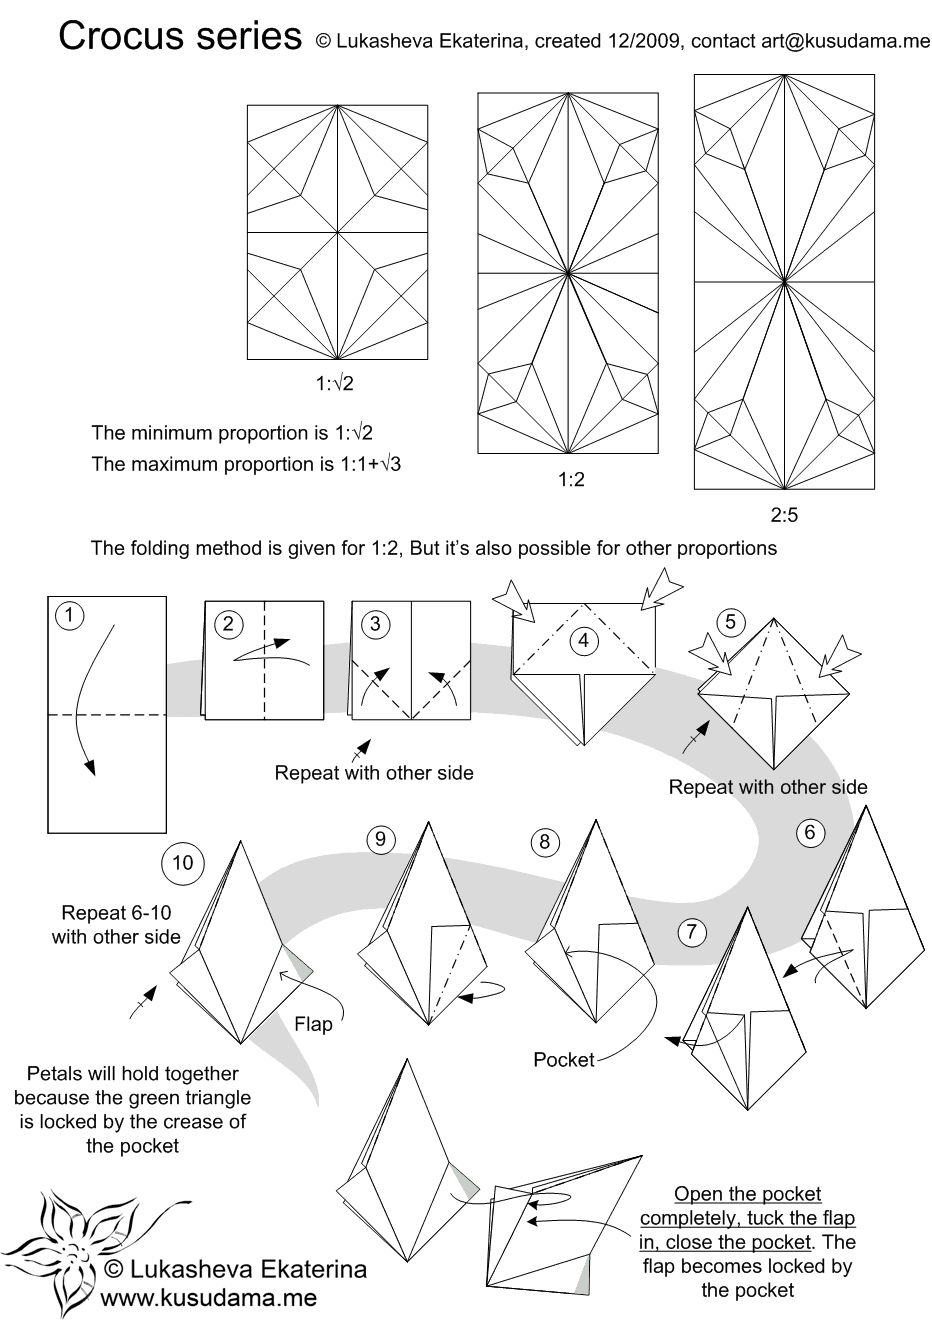 Diagram For Crocus Kusudama Origami And Papercrafts Pinterest Modular Diagrams Tutorial Instructions Techniques